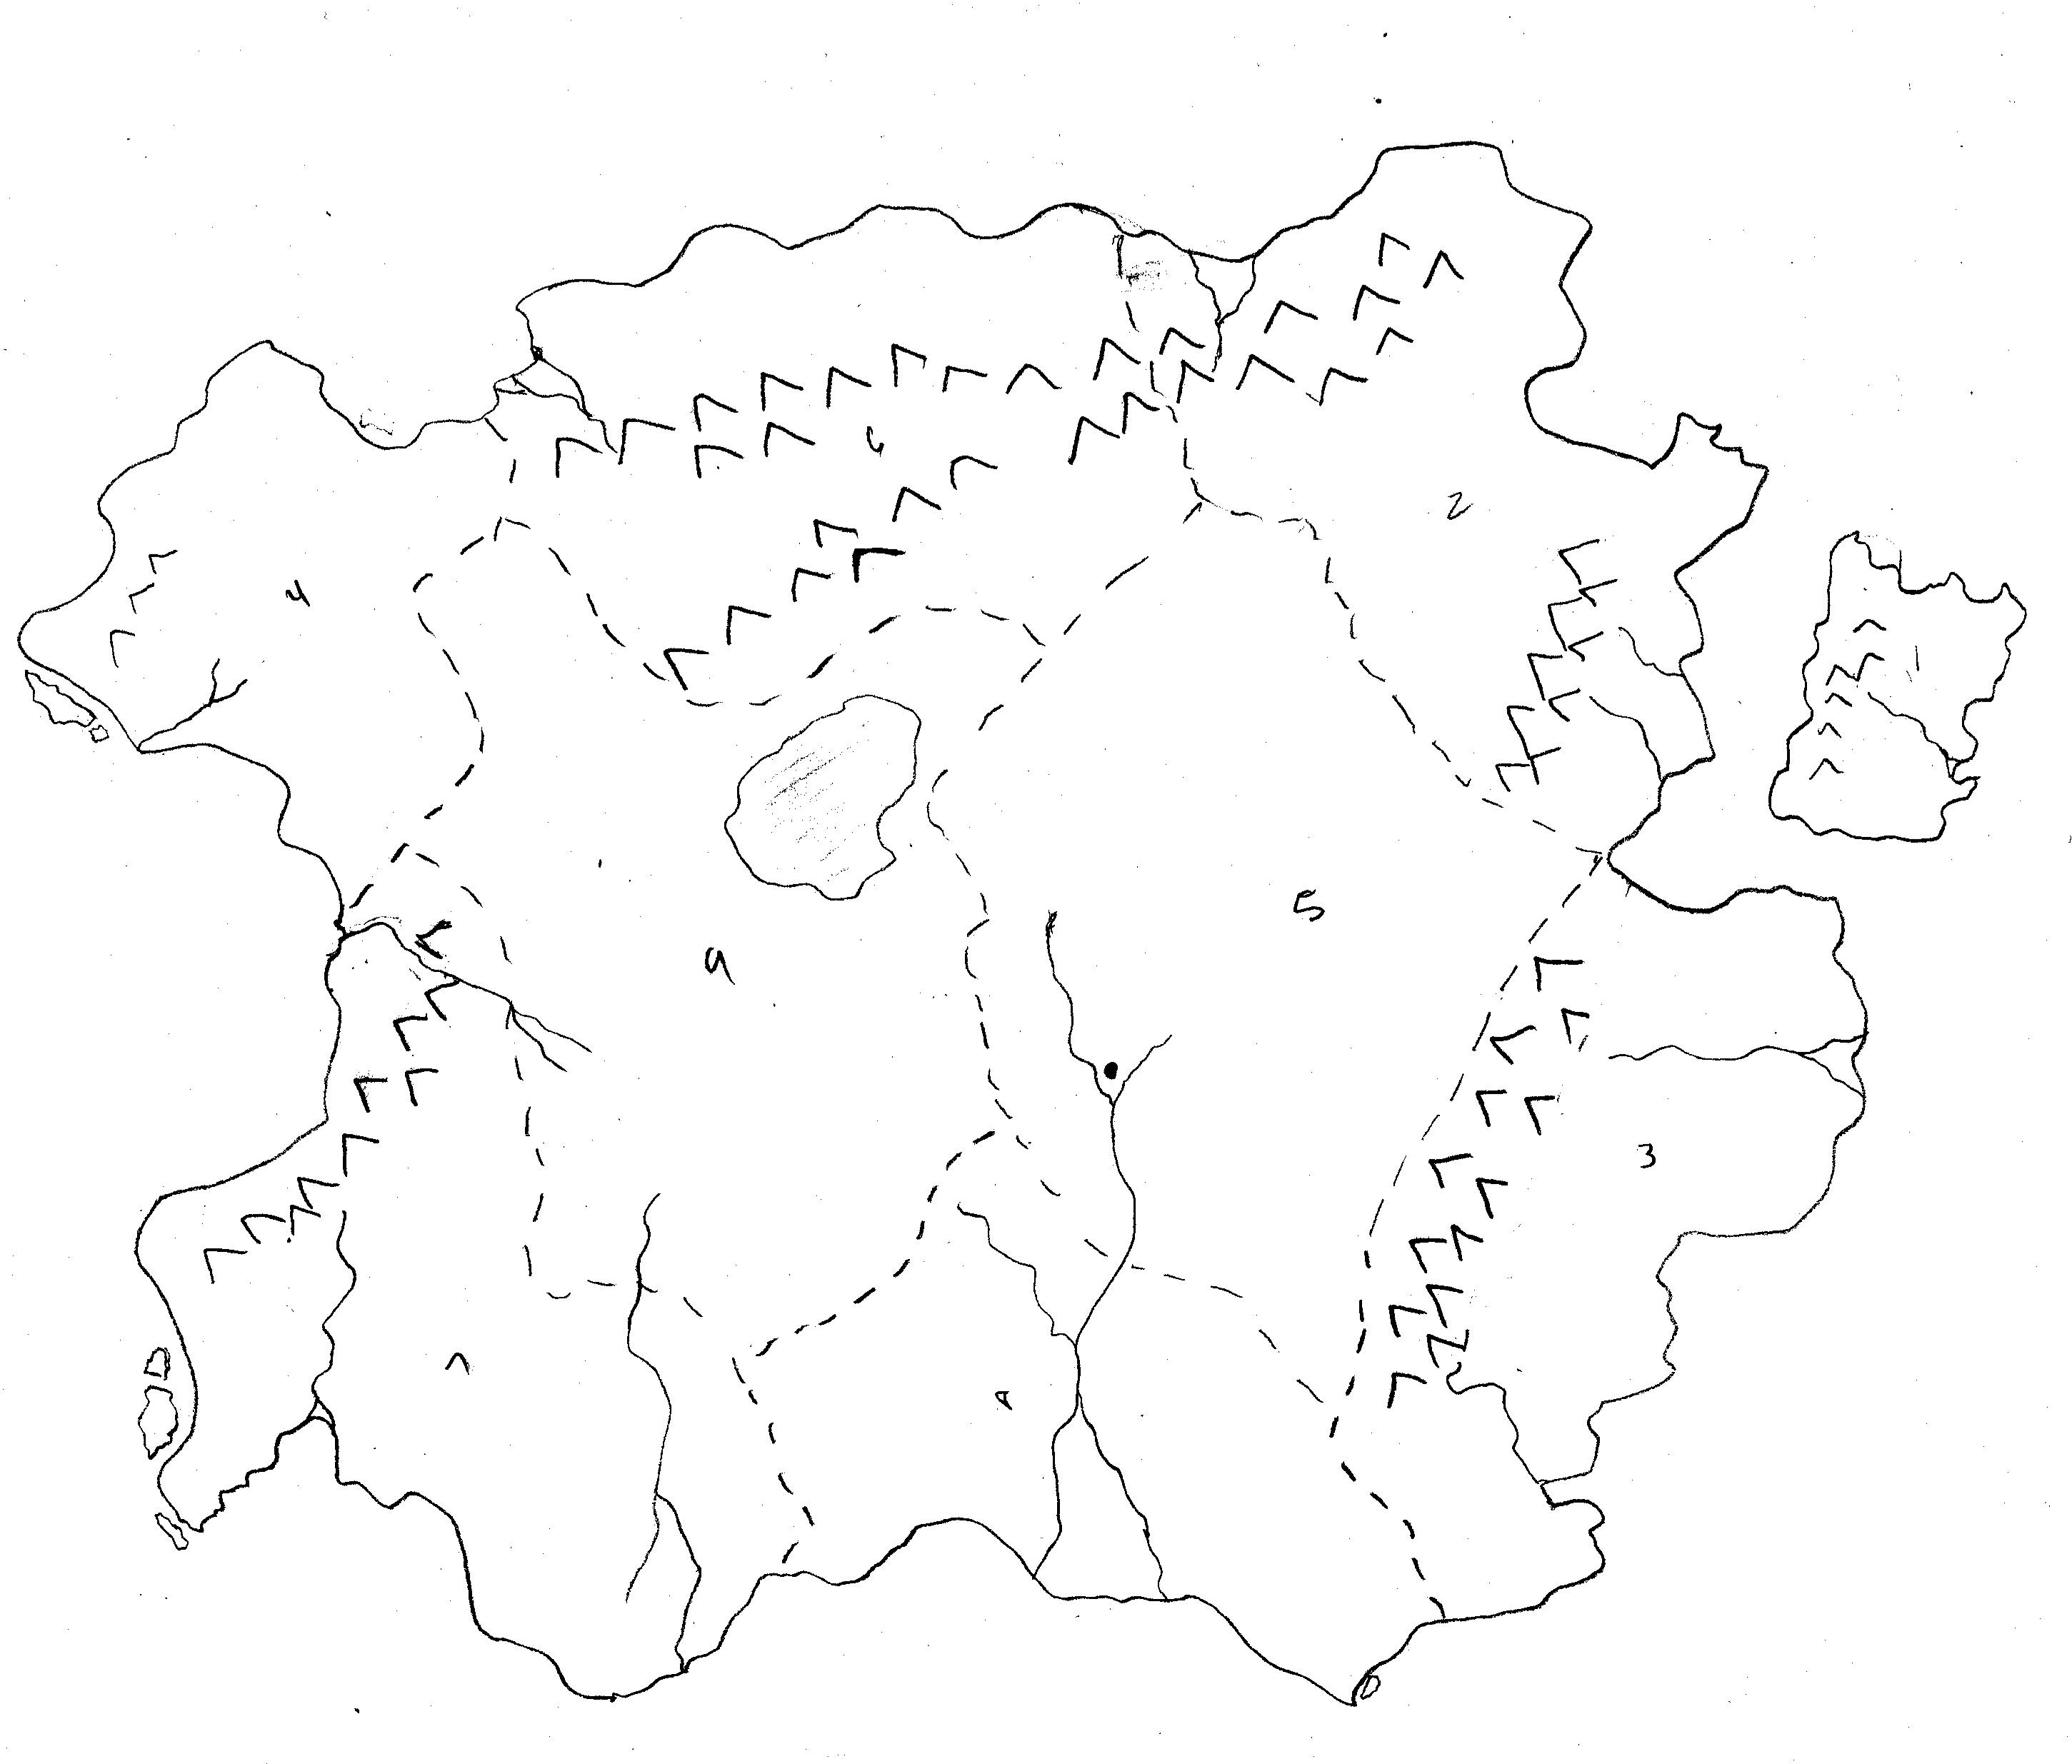 World Map Line Drawing At Getdrawings Com Free For Personal Use